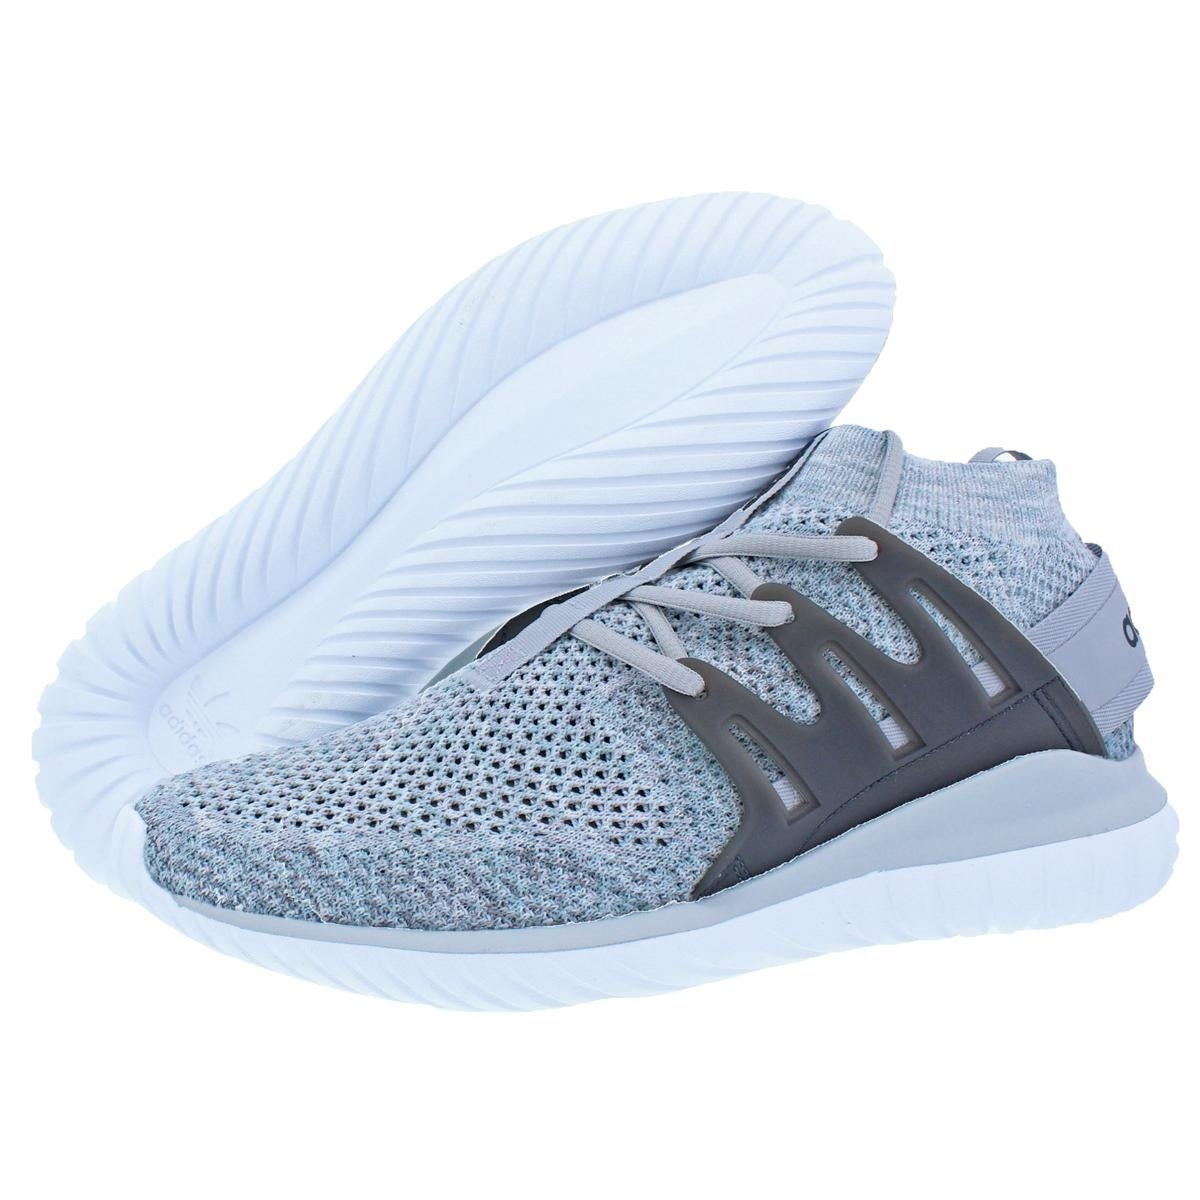 3e7dd006e12e5 adidas Originals Mens Tubular Nova PK Running Shoes Lightweight Casual